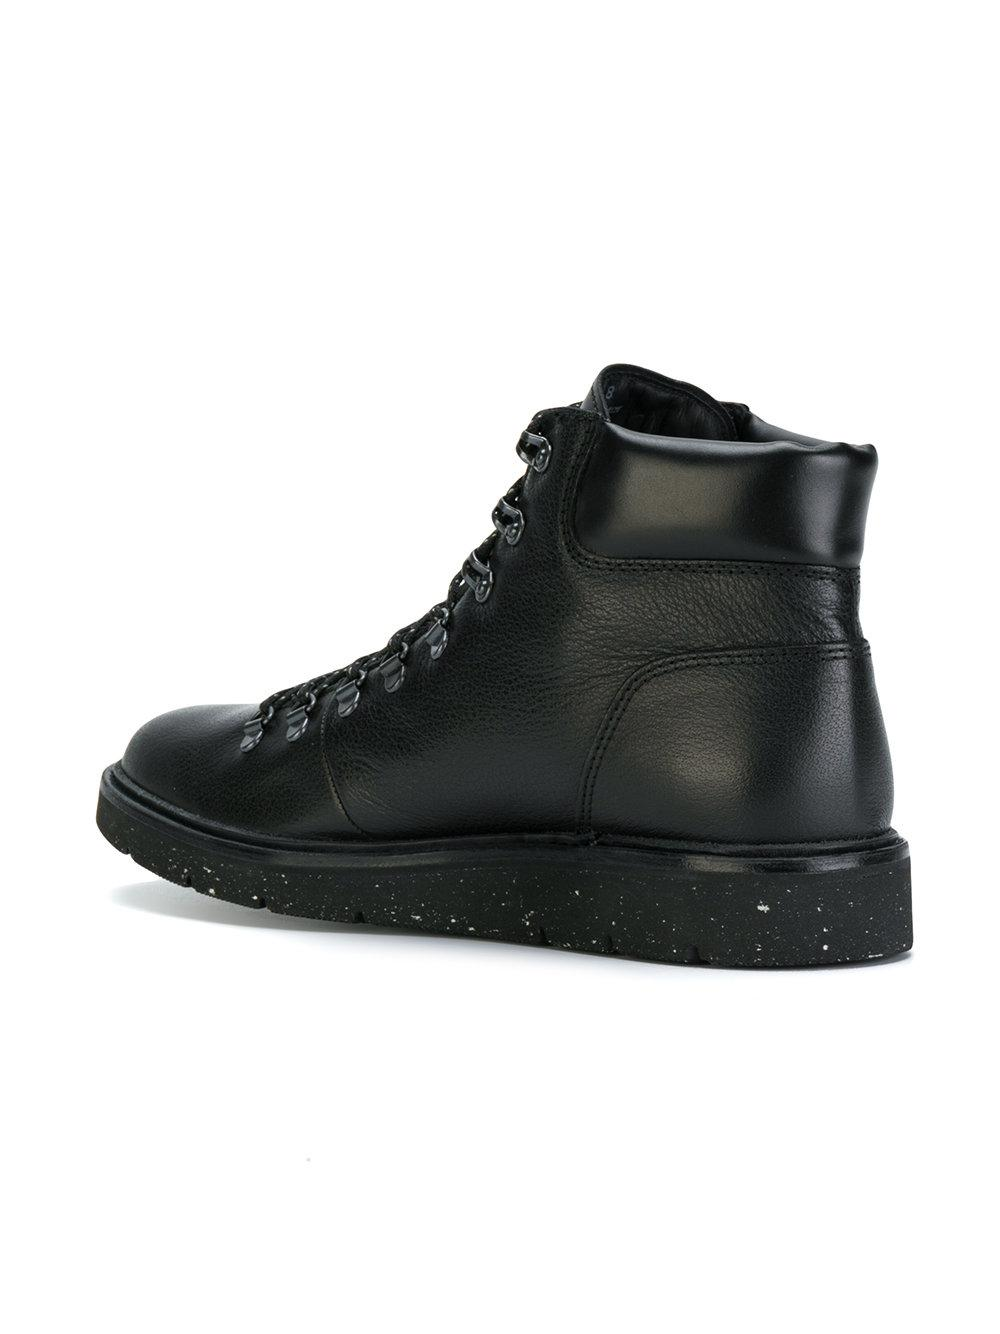 Hogan Leather Hiking Boots in Black for Men - Lyst